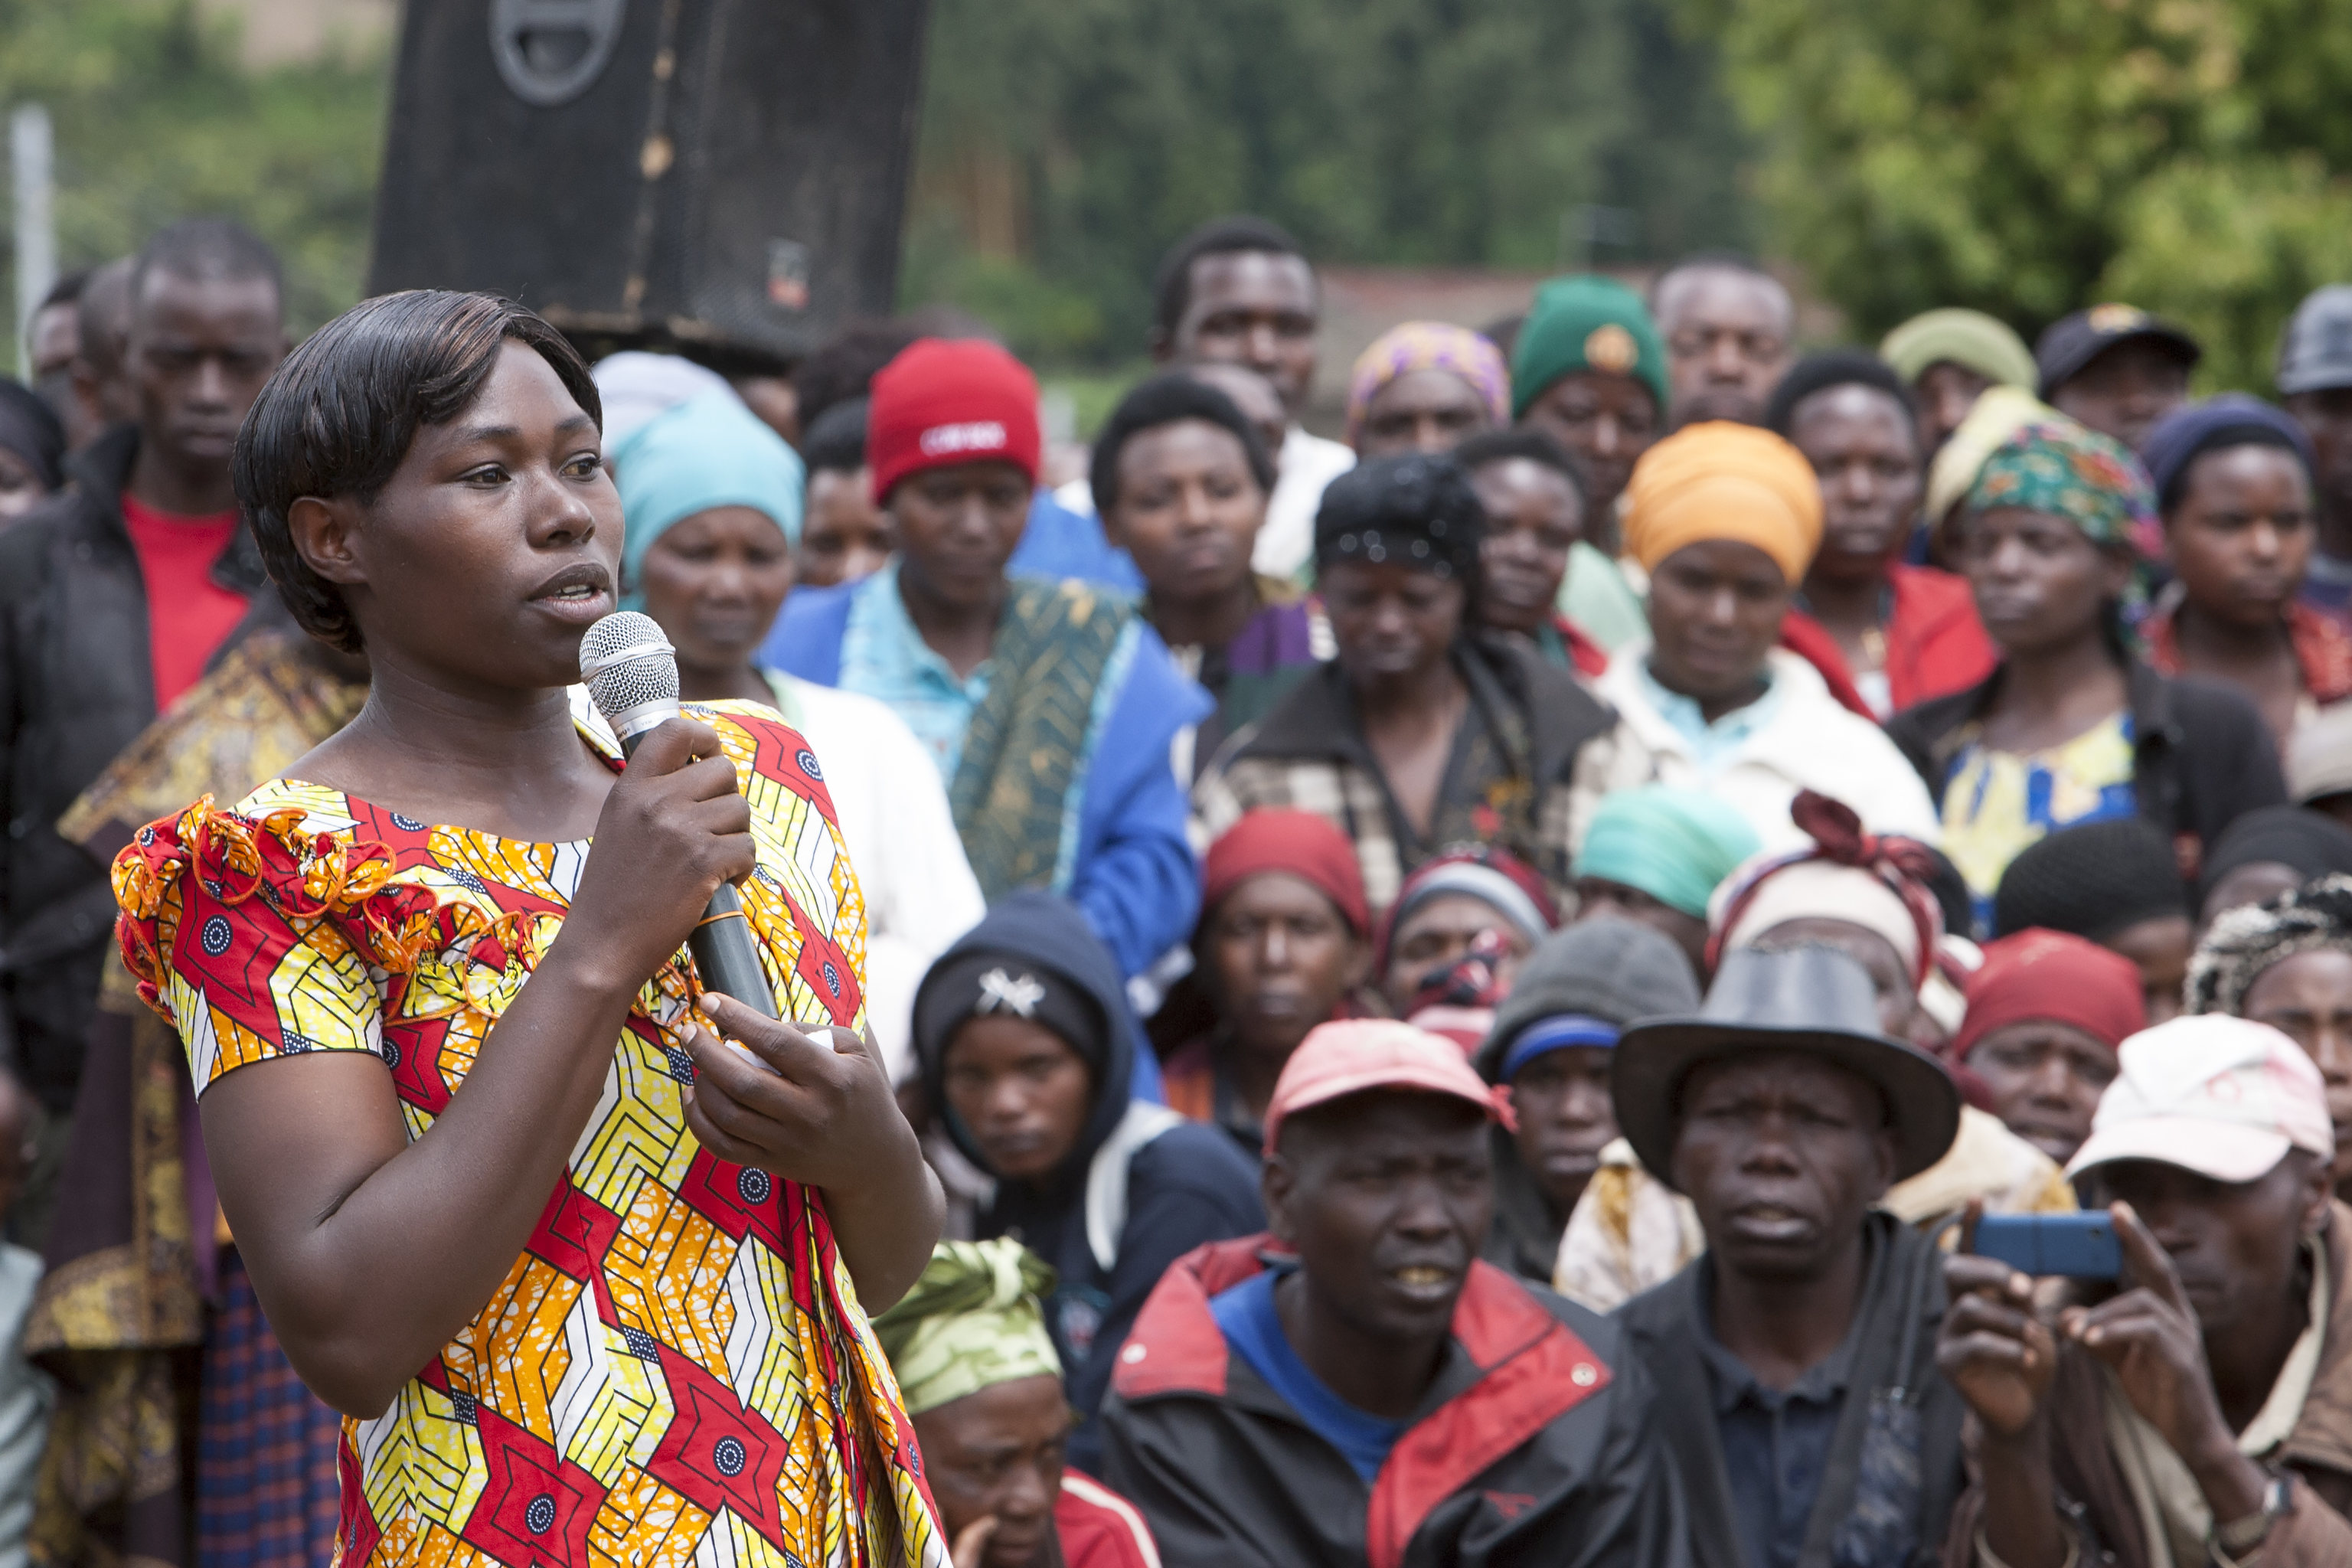 A female employee at a land husbandry site in Nyabihu District, Rwanda, addresses her fellow workers. The site employs about 150 labourers of which 60% are women. © Simone D. McCourtie / World Bank